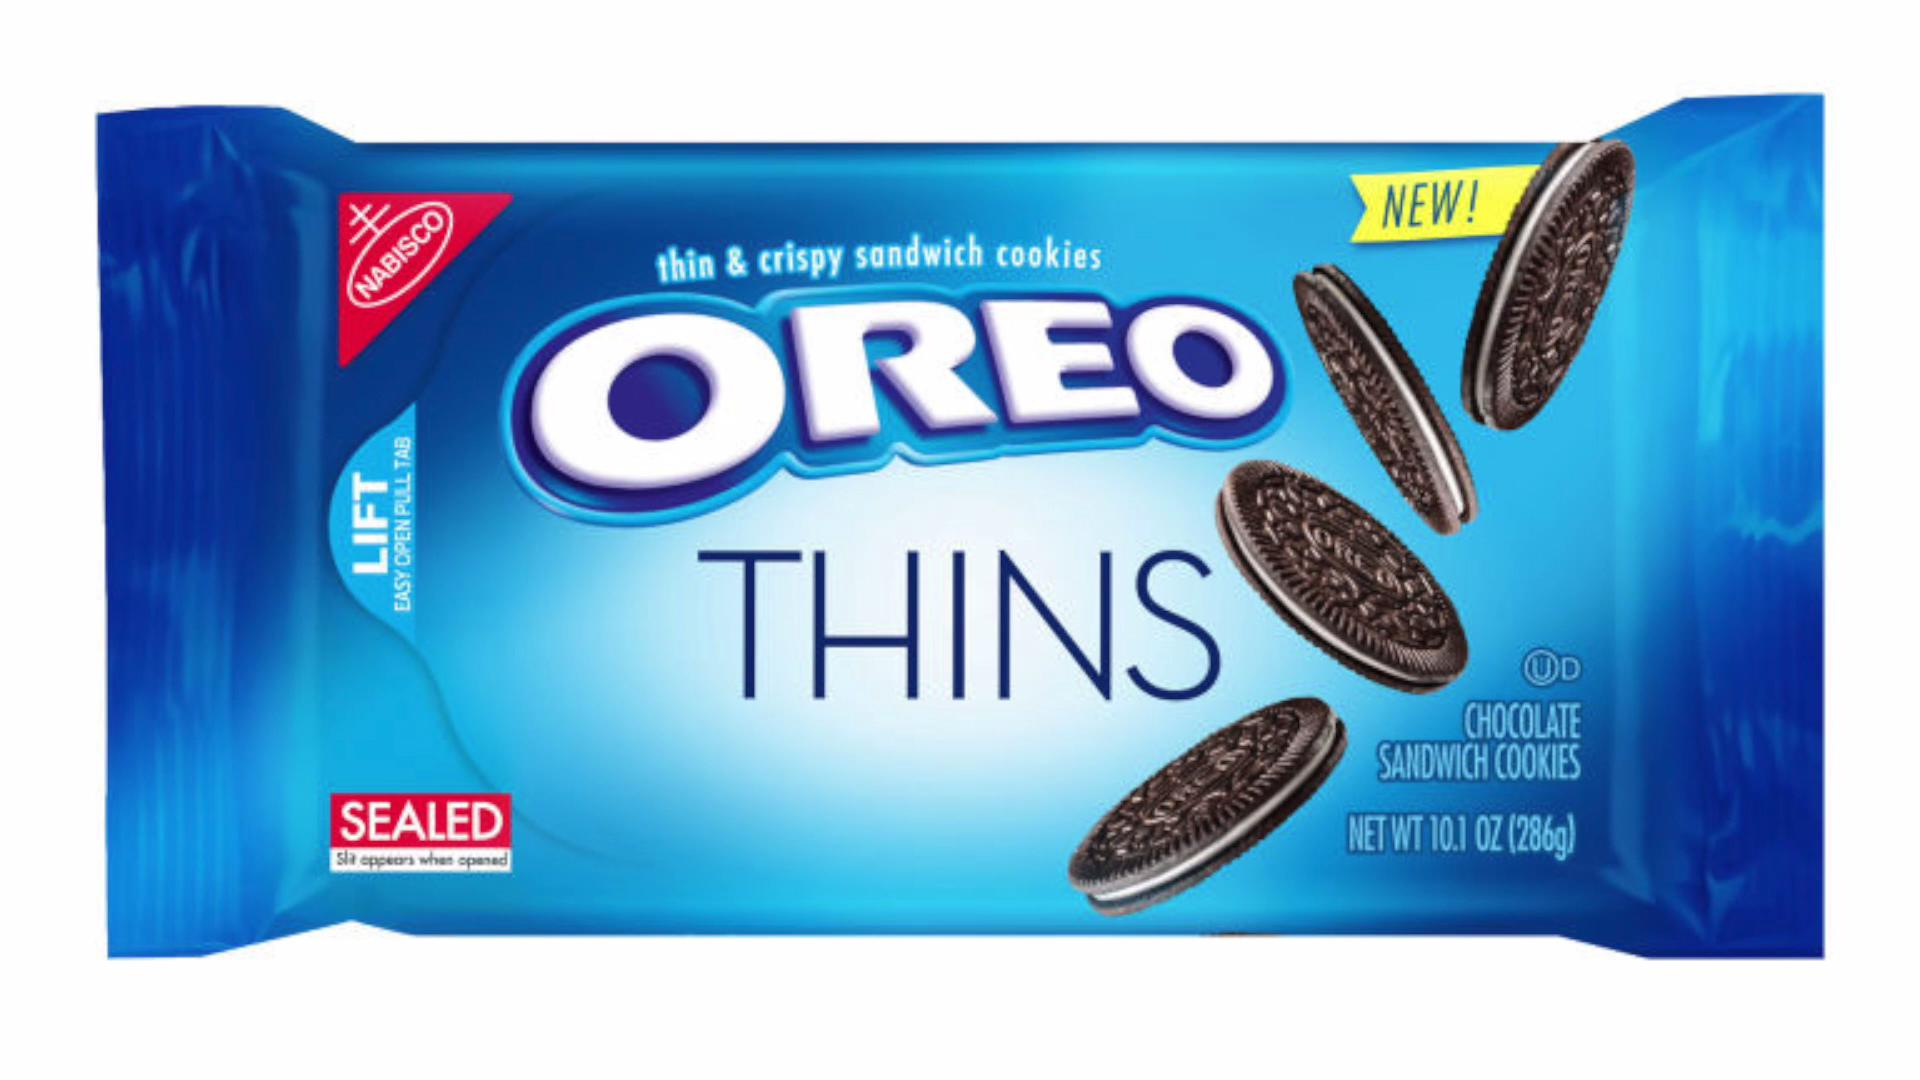 Oreo Thins were obviously created by adults